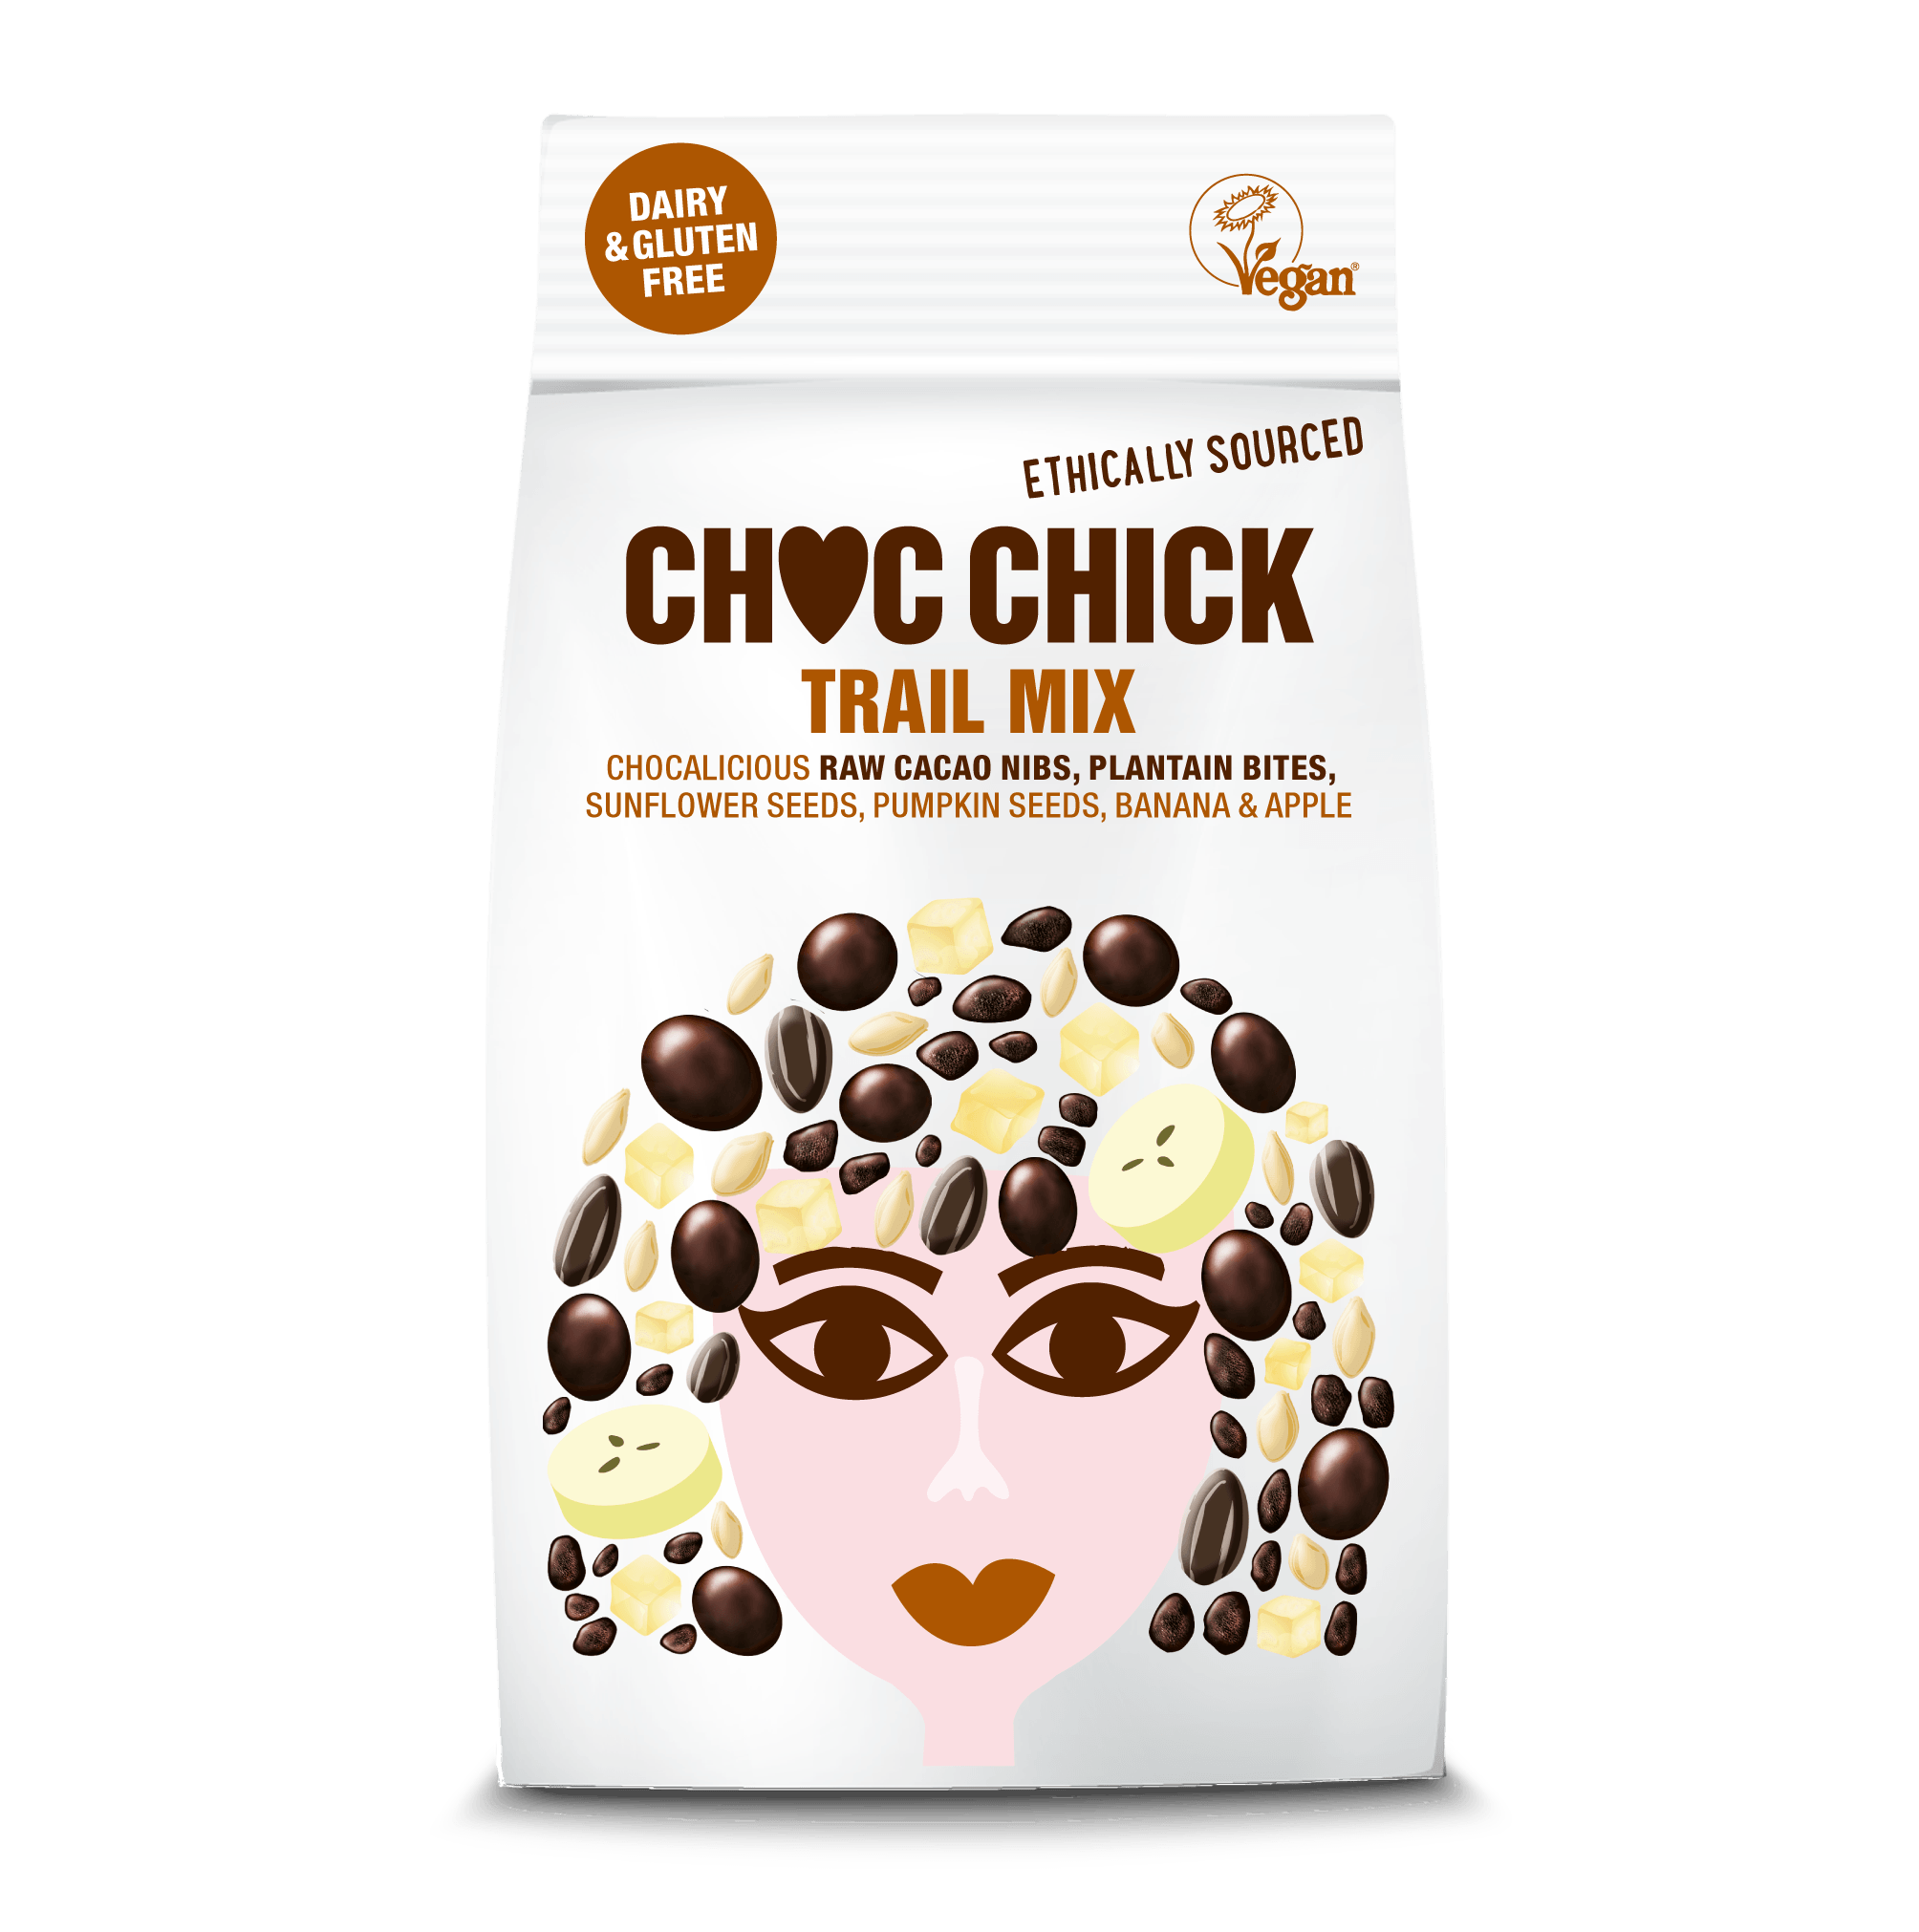 CHOC CHICK Organic Raw Chocolate Trail Mix (120g or case of 10) Kind Shop 2